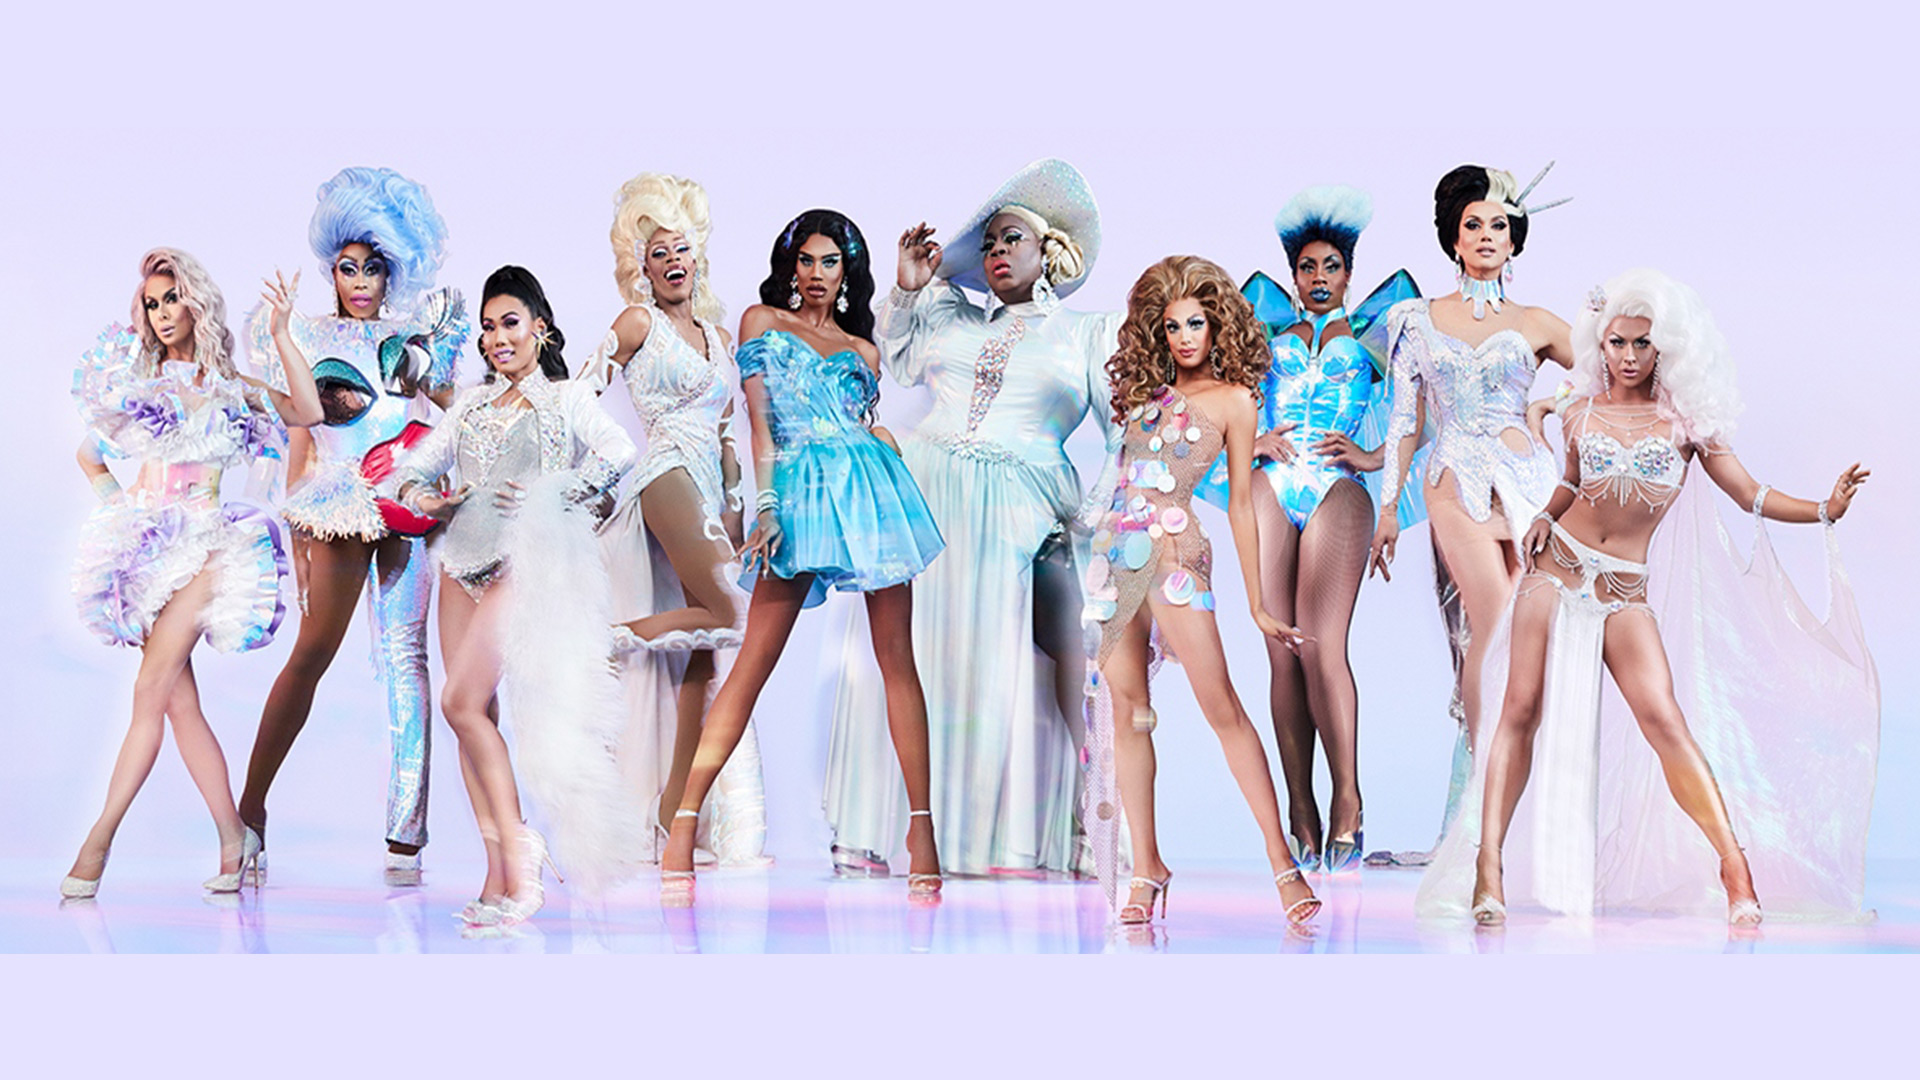 RuPaul's Drag Race: All Stars Image